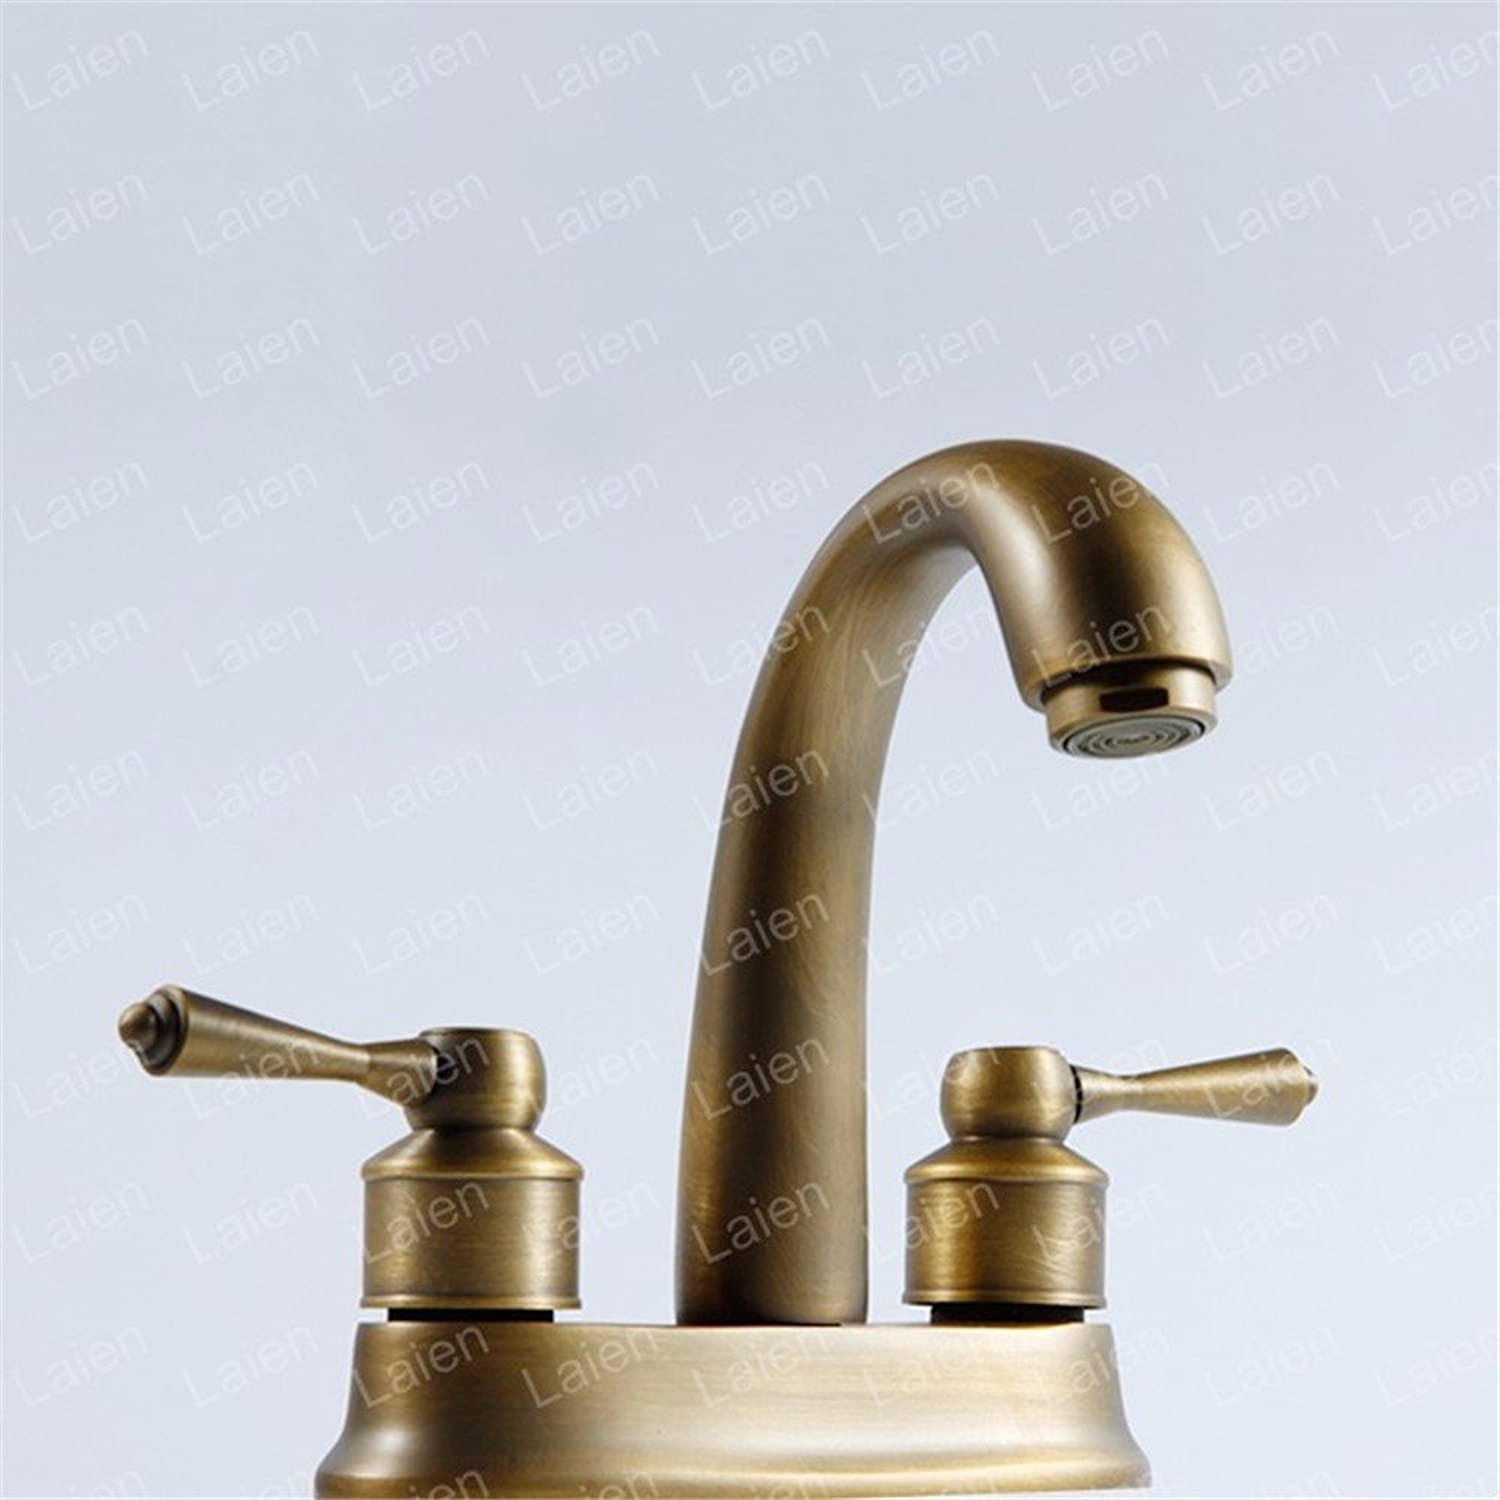 Full Copper Retro hot and Cold Ceramic Valve Two Holes Double Handle Bathroom Basin Faucet